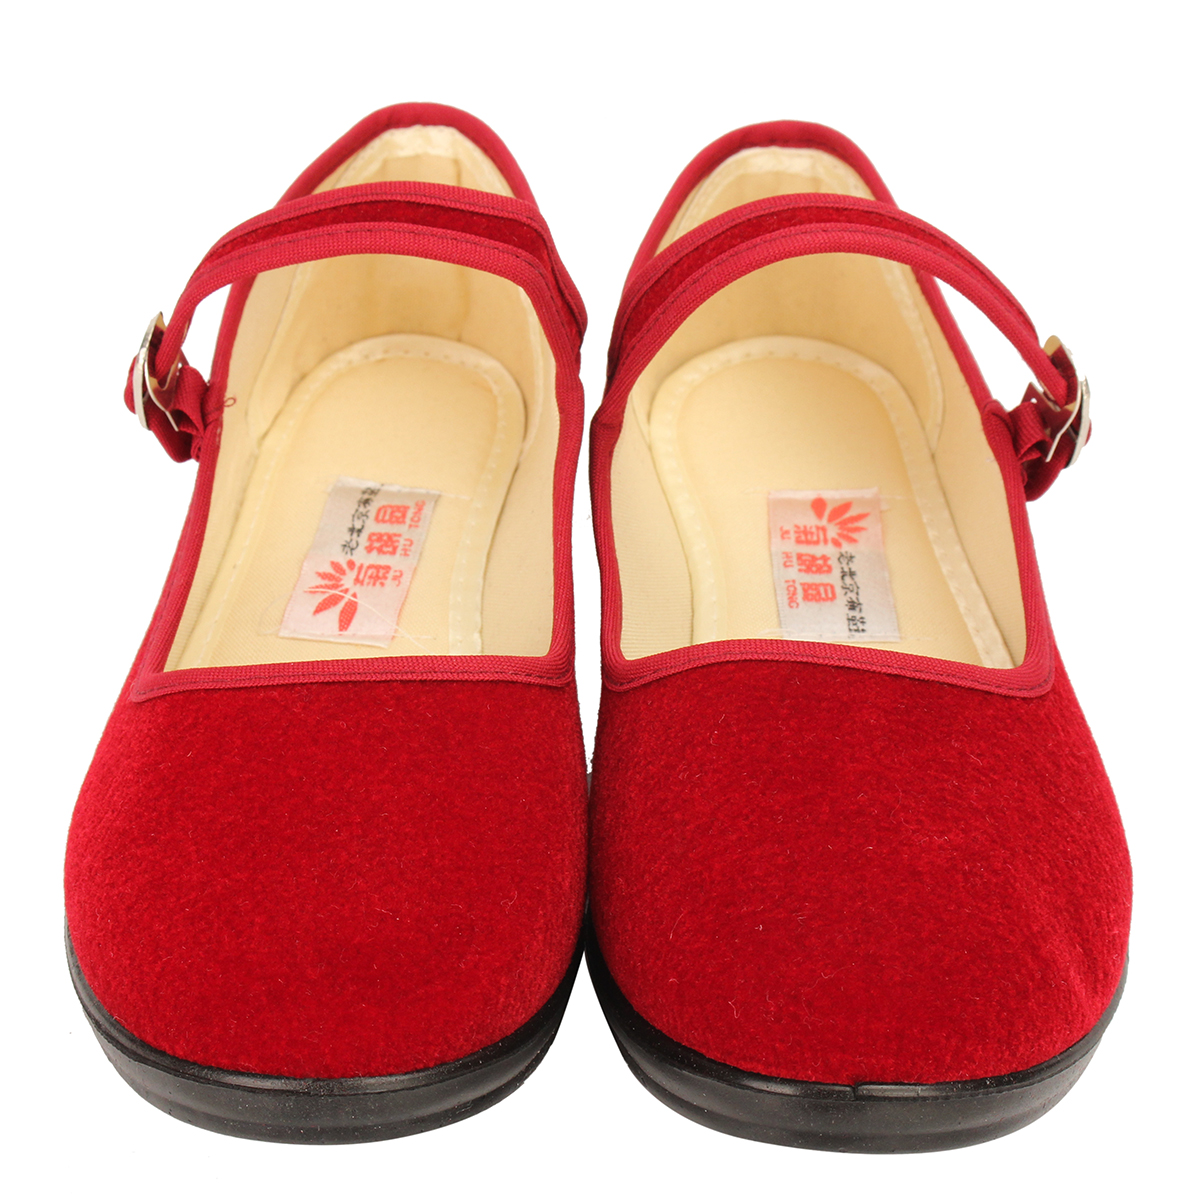 Women-039-s-Mid-Wedge-Heel-Mary-Jane-Hotel-Work-Strap-Ballet-Cotton-Buckle-Shoes thumbnail 11